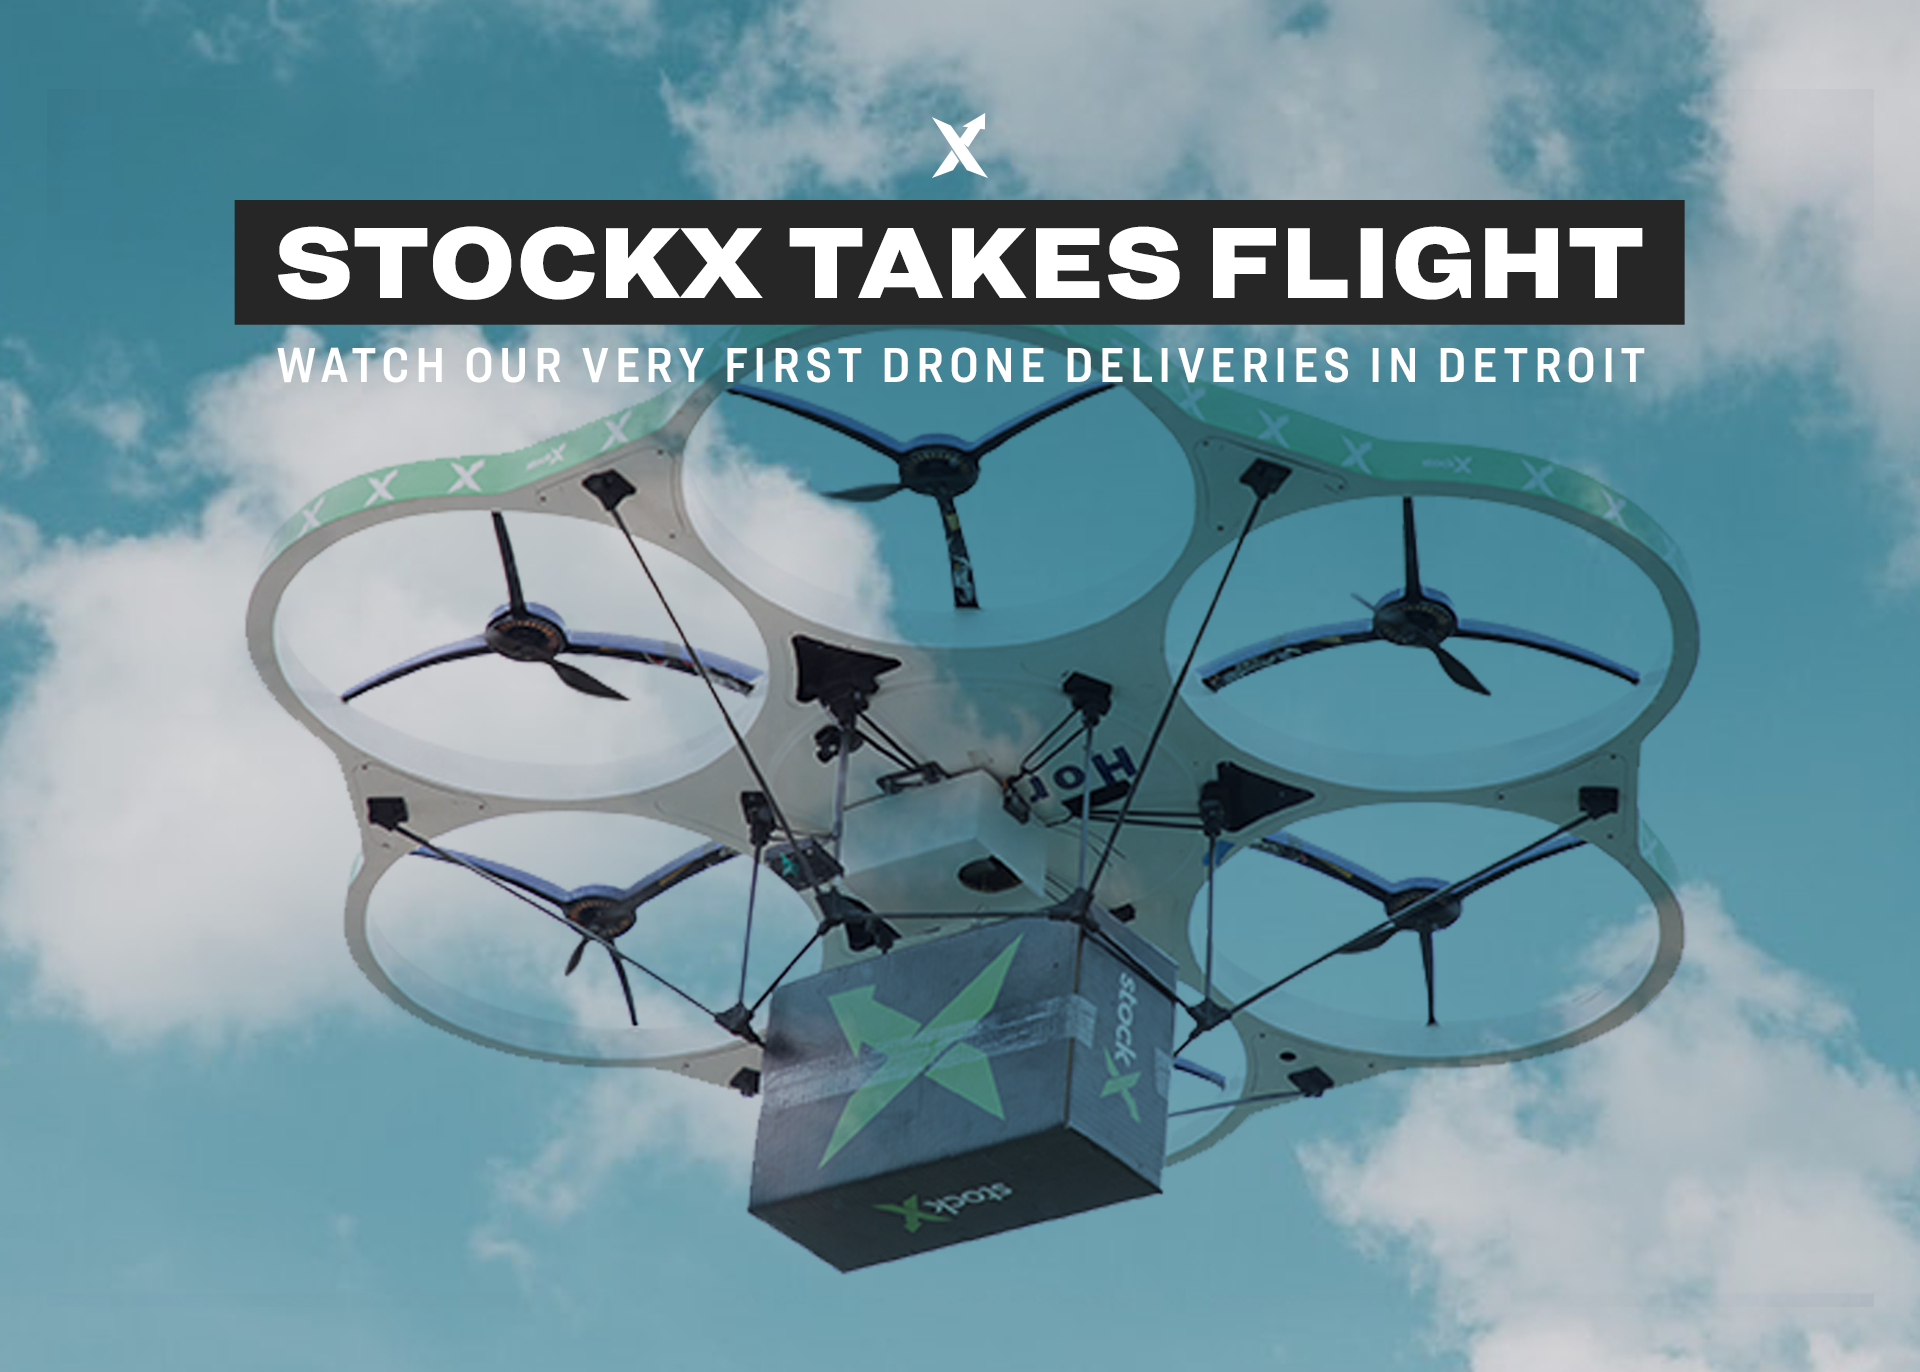 StockX Drone Delivery - StockX News